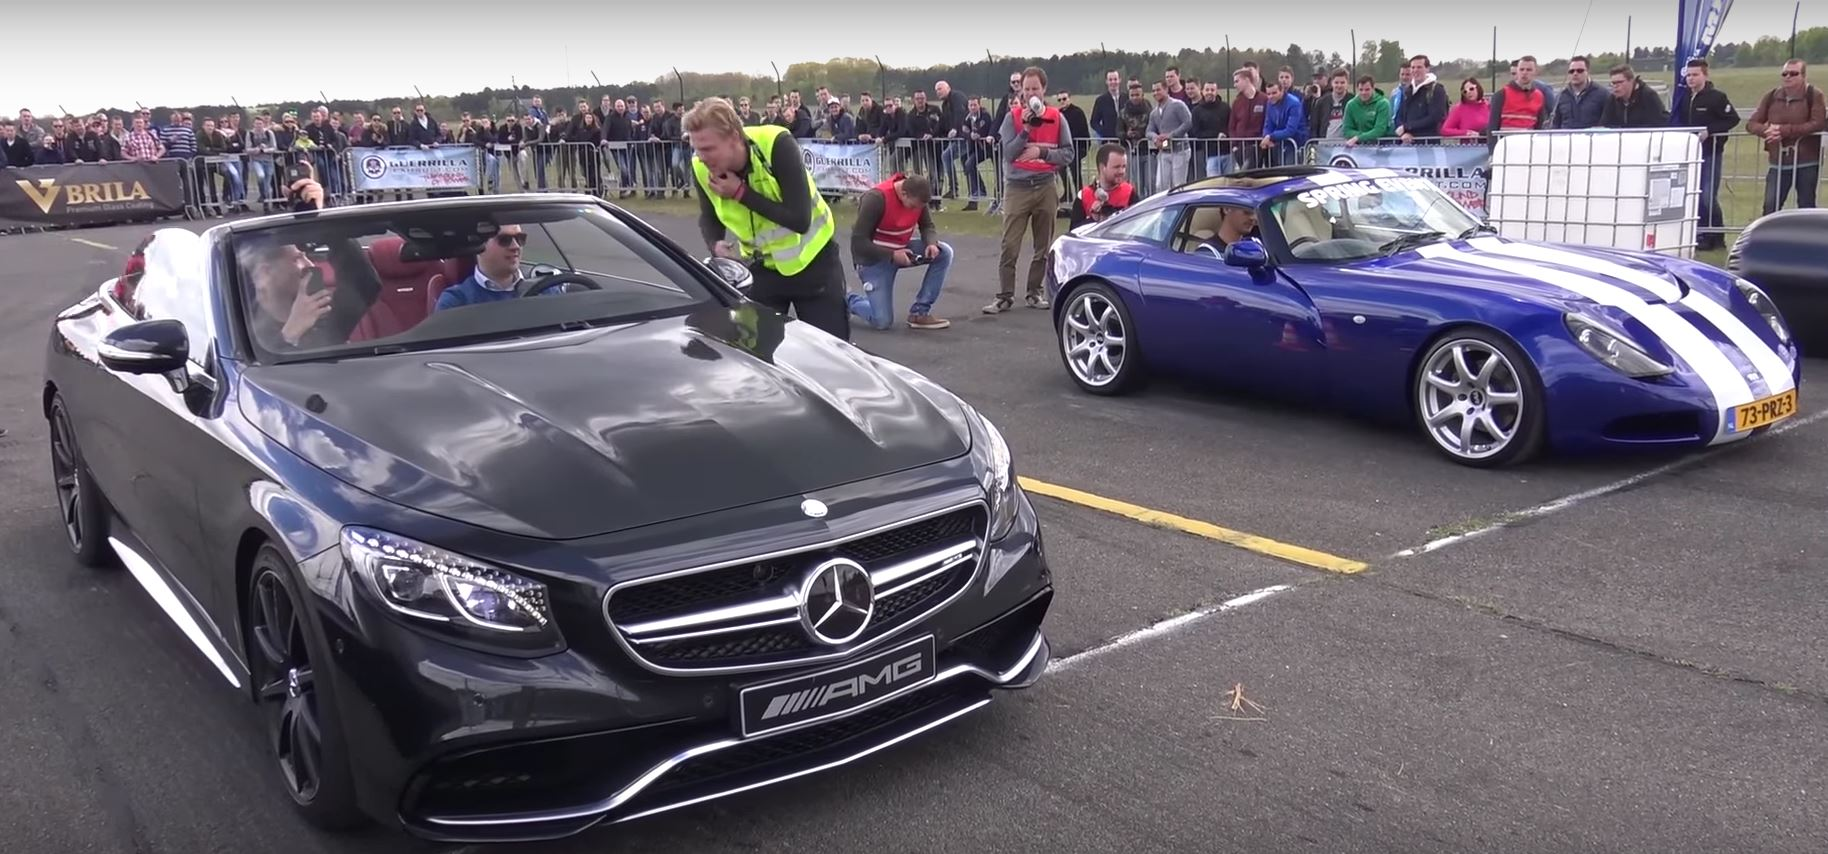 TVR T350T Nearly Crashes in Mercedes-AMG S63 Cabriolet Drag Race ...